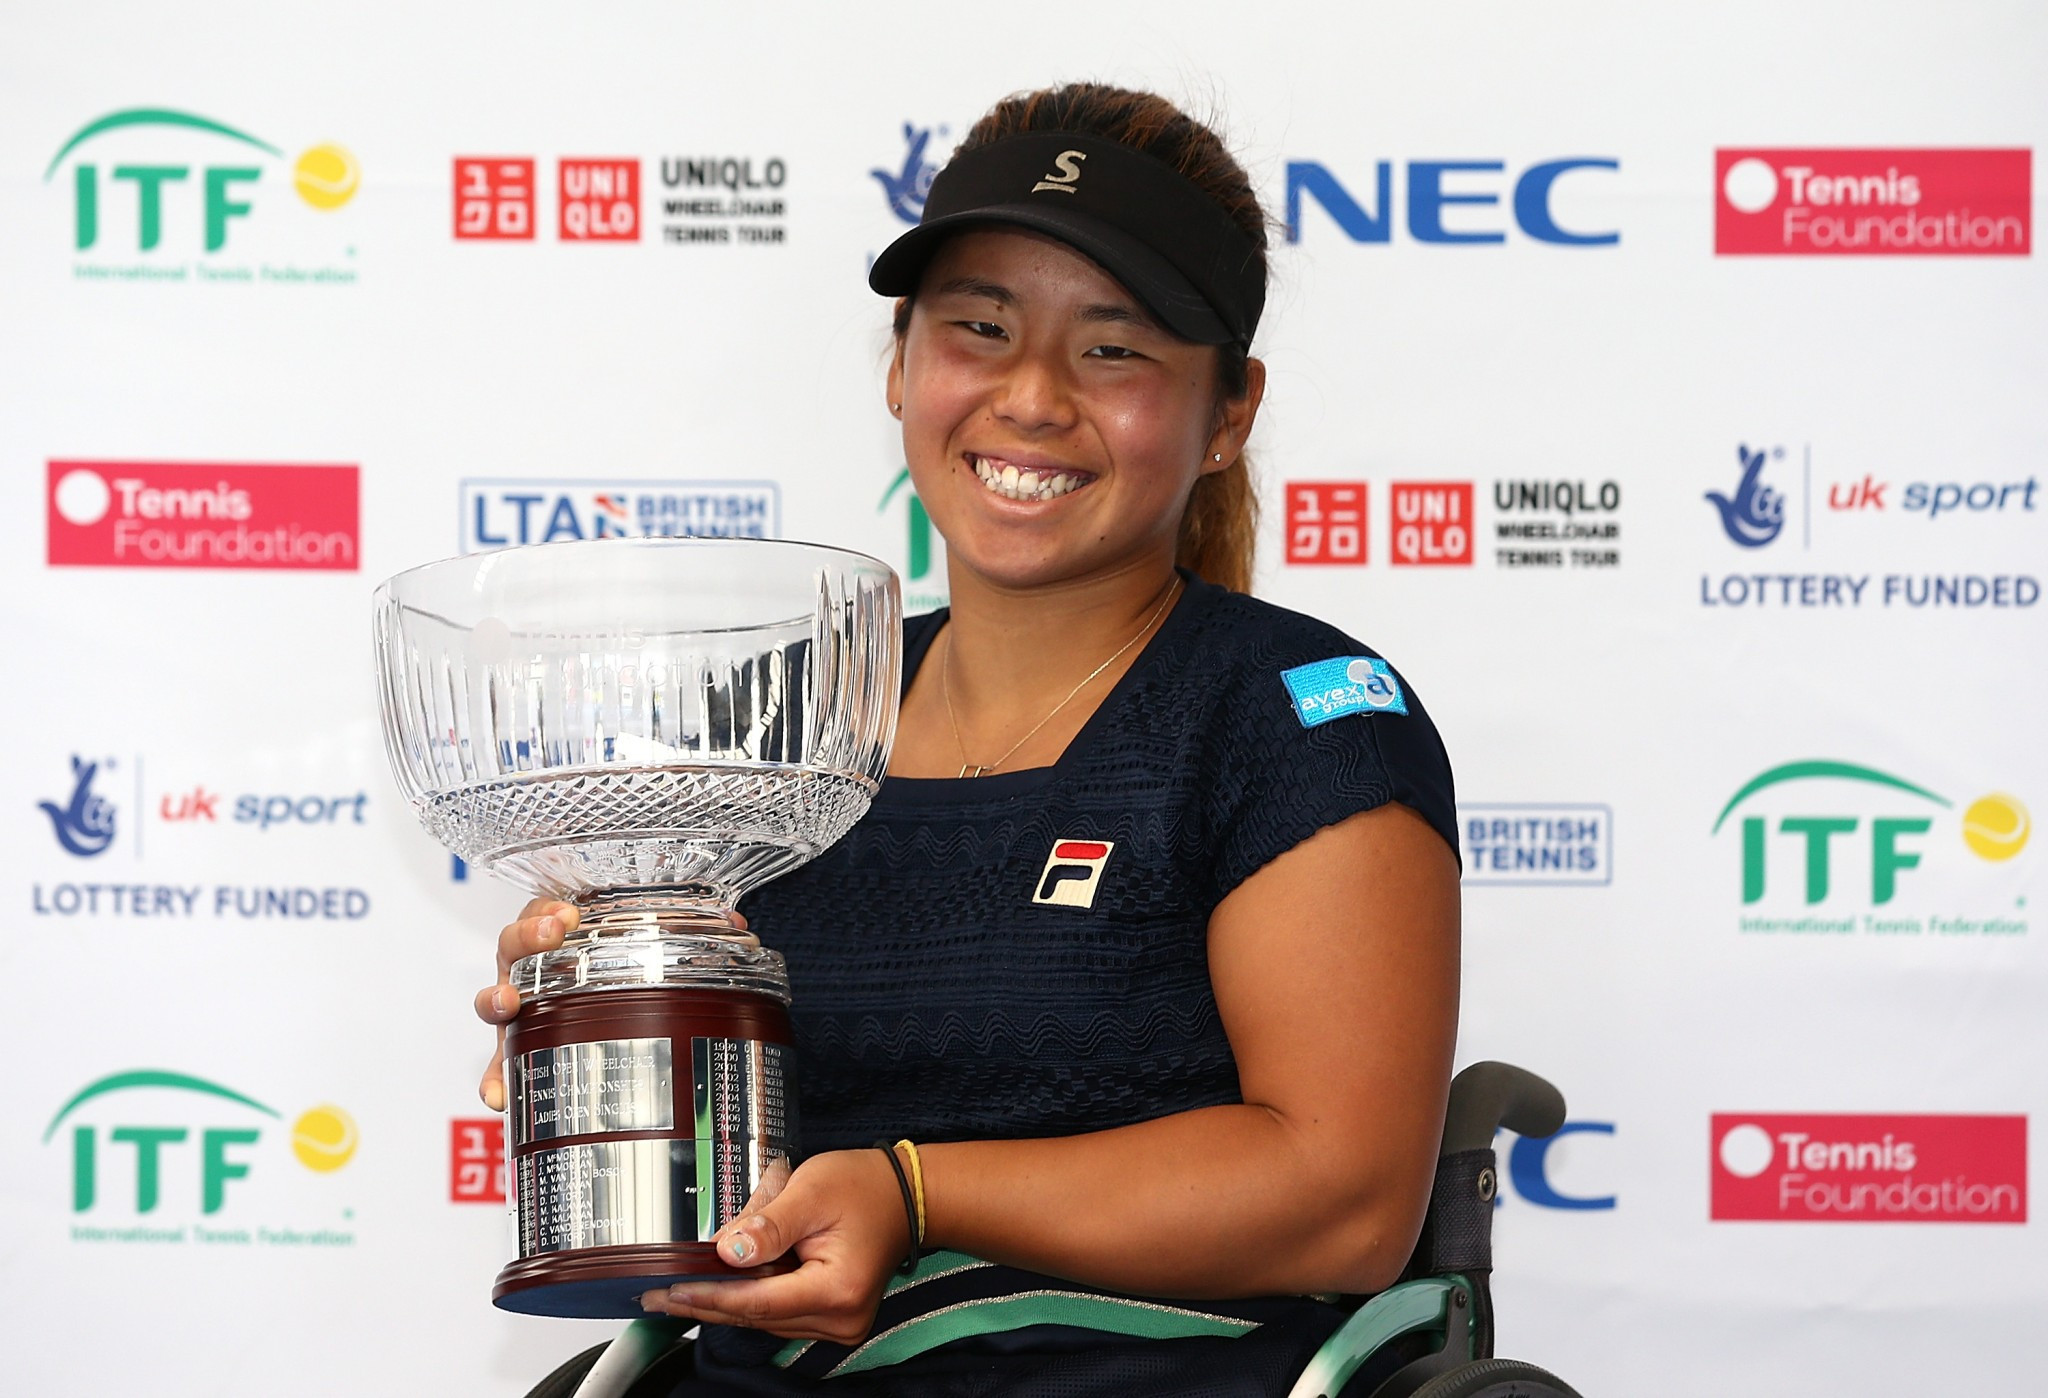 Yui Kamiji has stayed in first place of the ITF wheelchair tennis women's rankings ©Getty Images